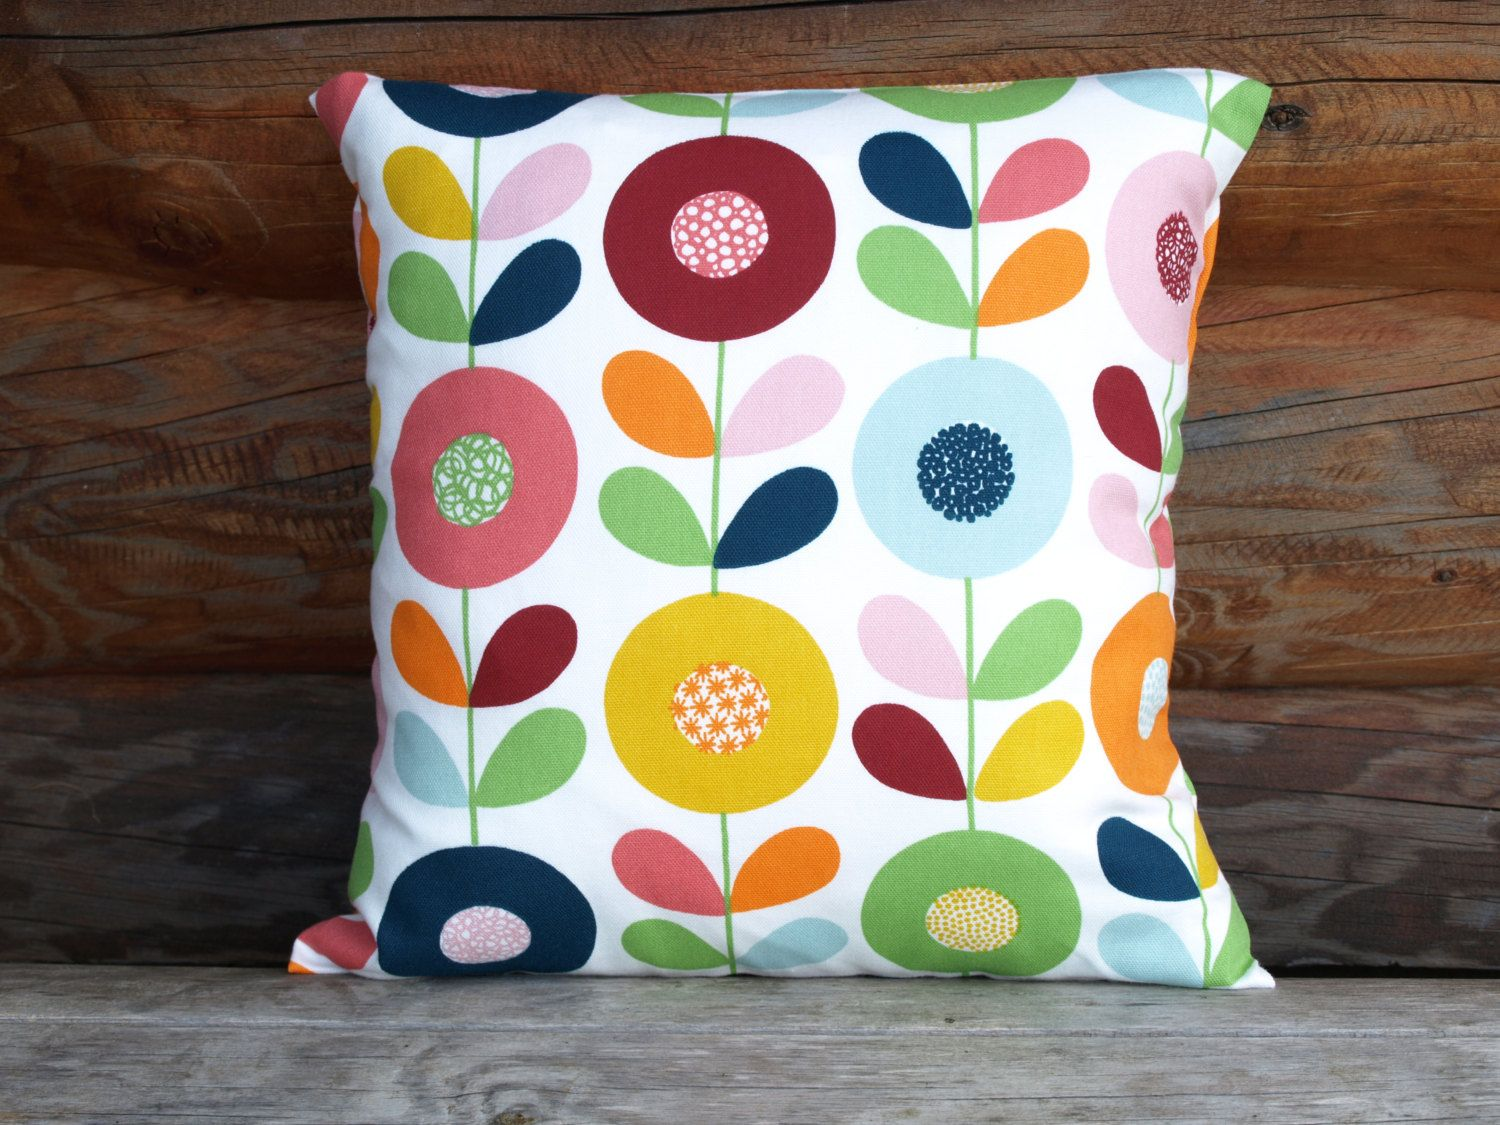 Decorative Pillow Cover White Bright Flowers Floral Decorative Etsy In 2021 Floral Pillows Decorative Pillow Covers Decorative Pillows